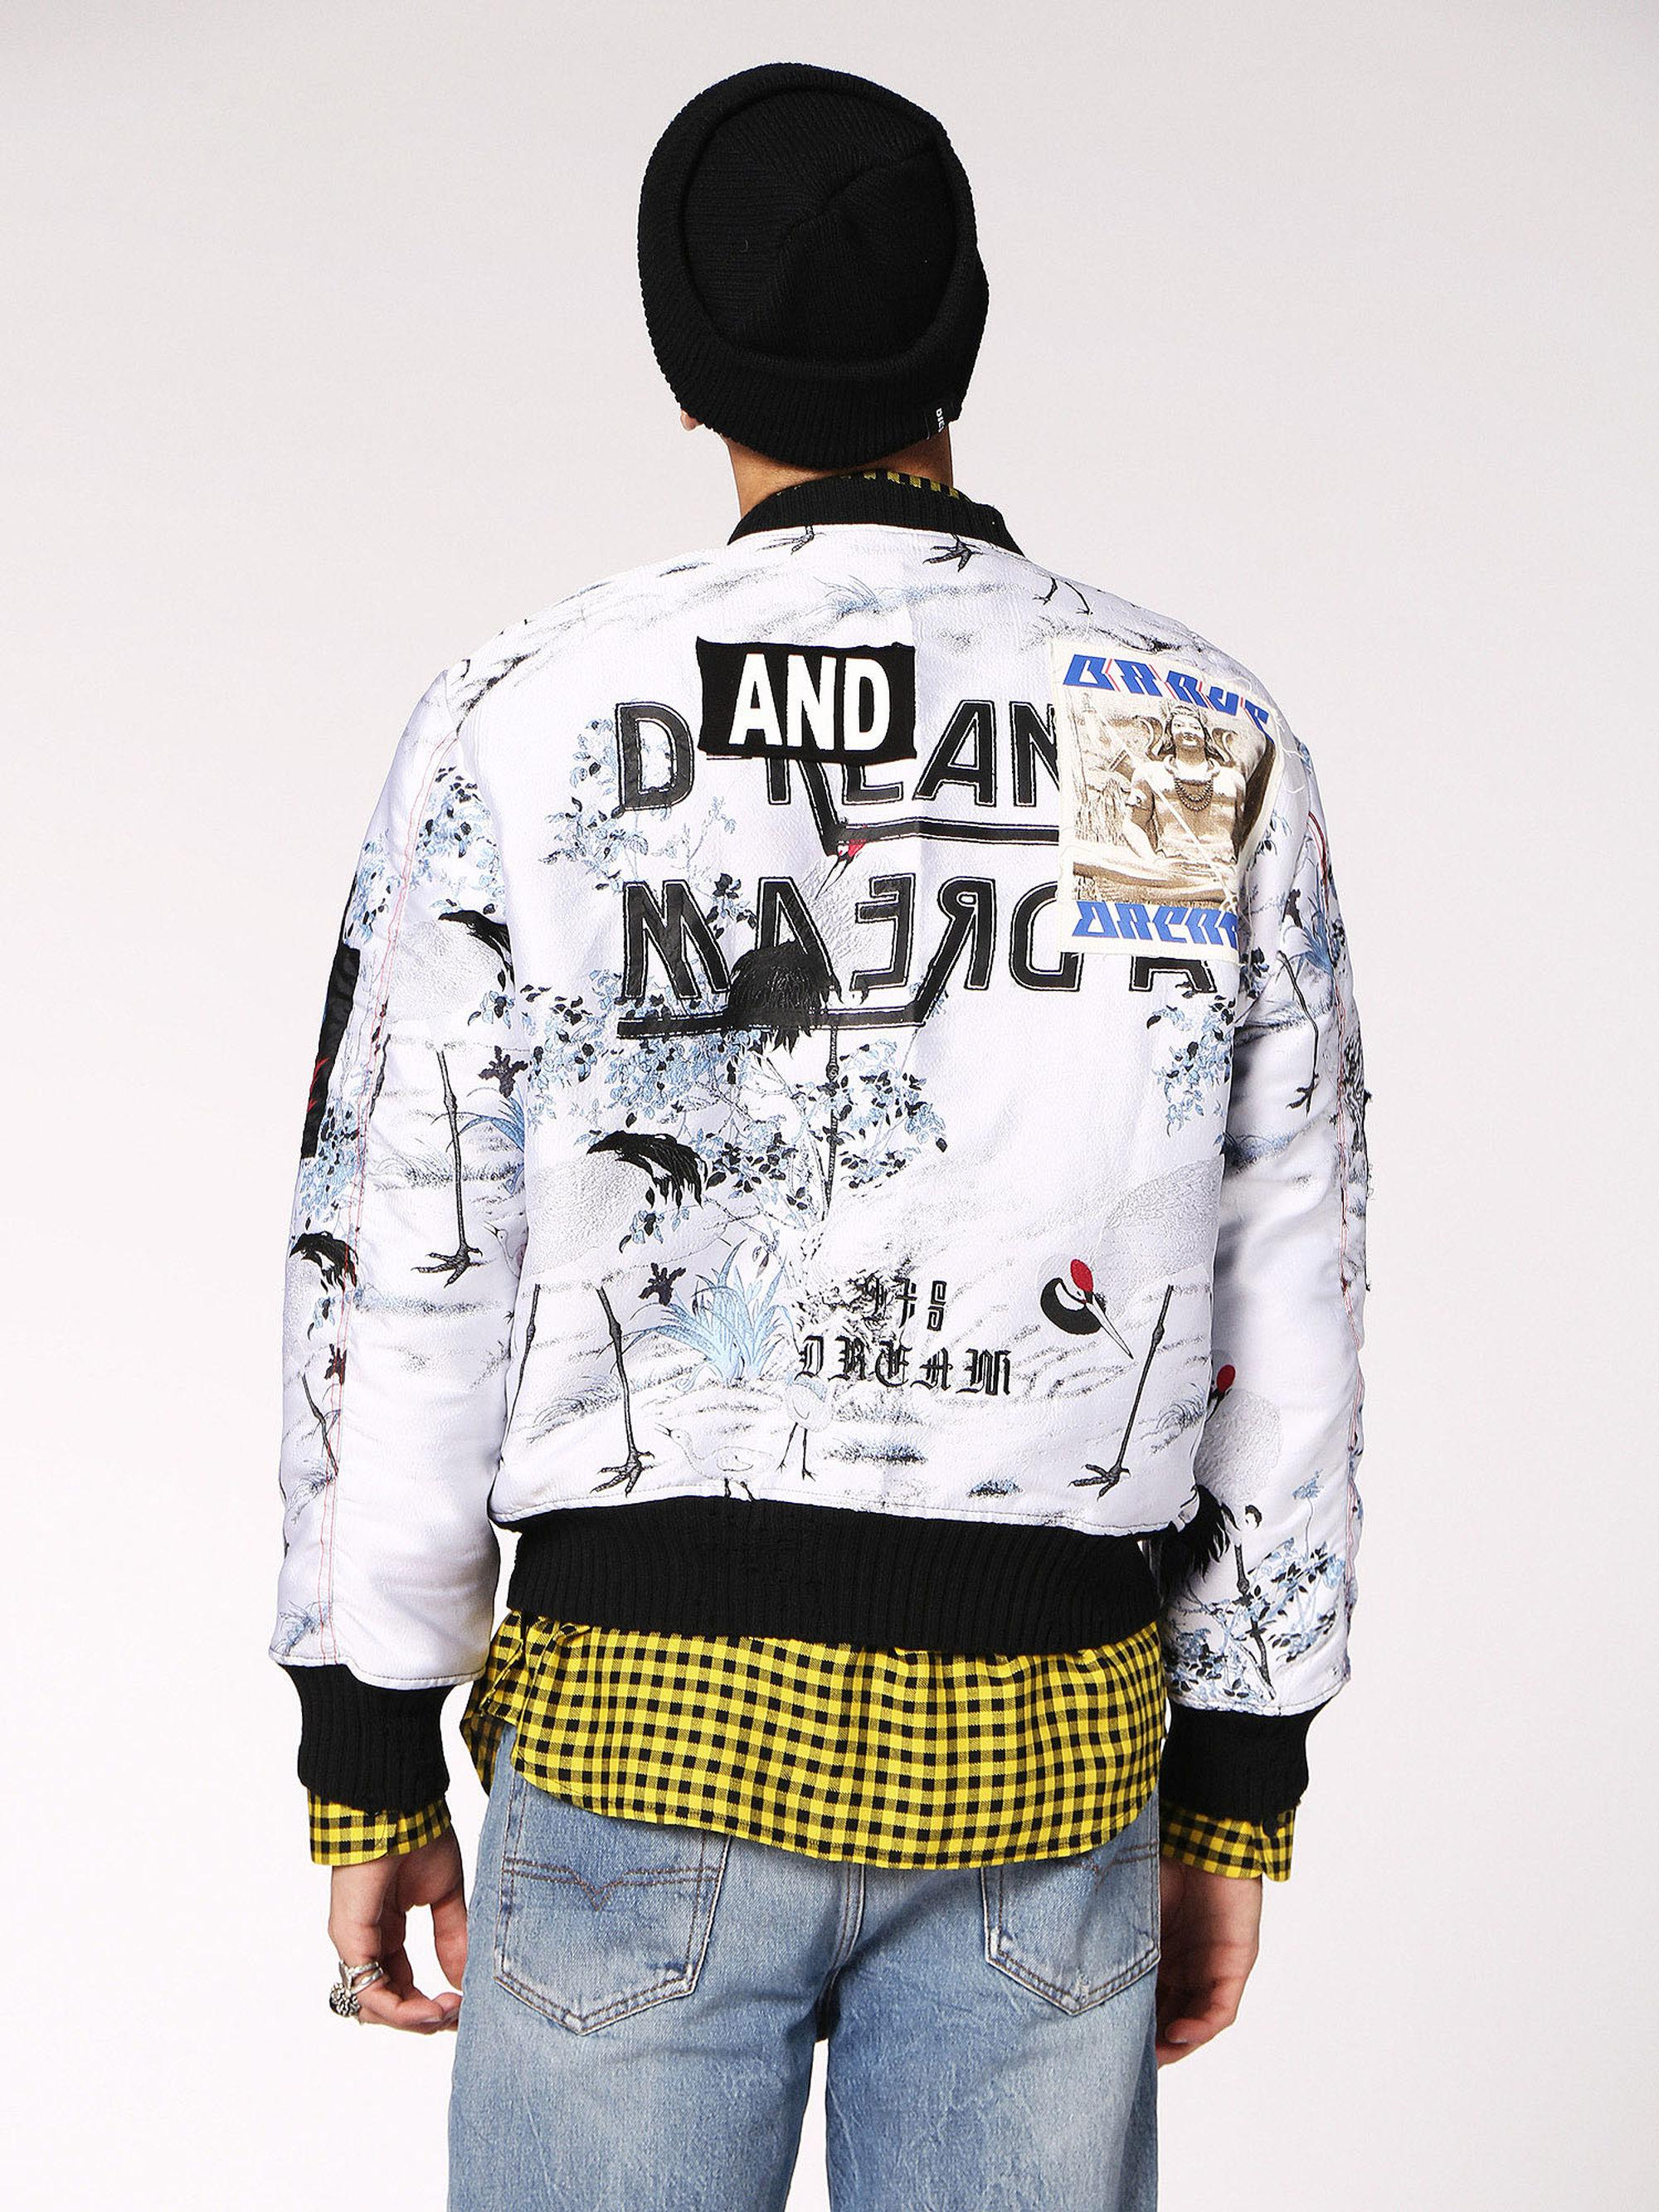 c29c69abe8cc DIESEL - Multicolor Jacquard Bomber Jacket With Graphic for Men - Lyst.  View fullscreen